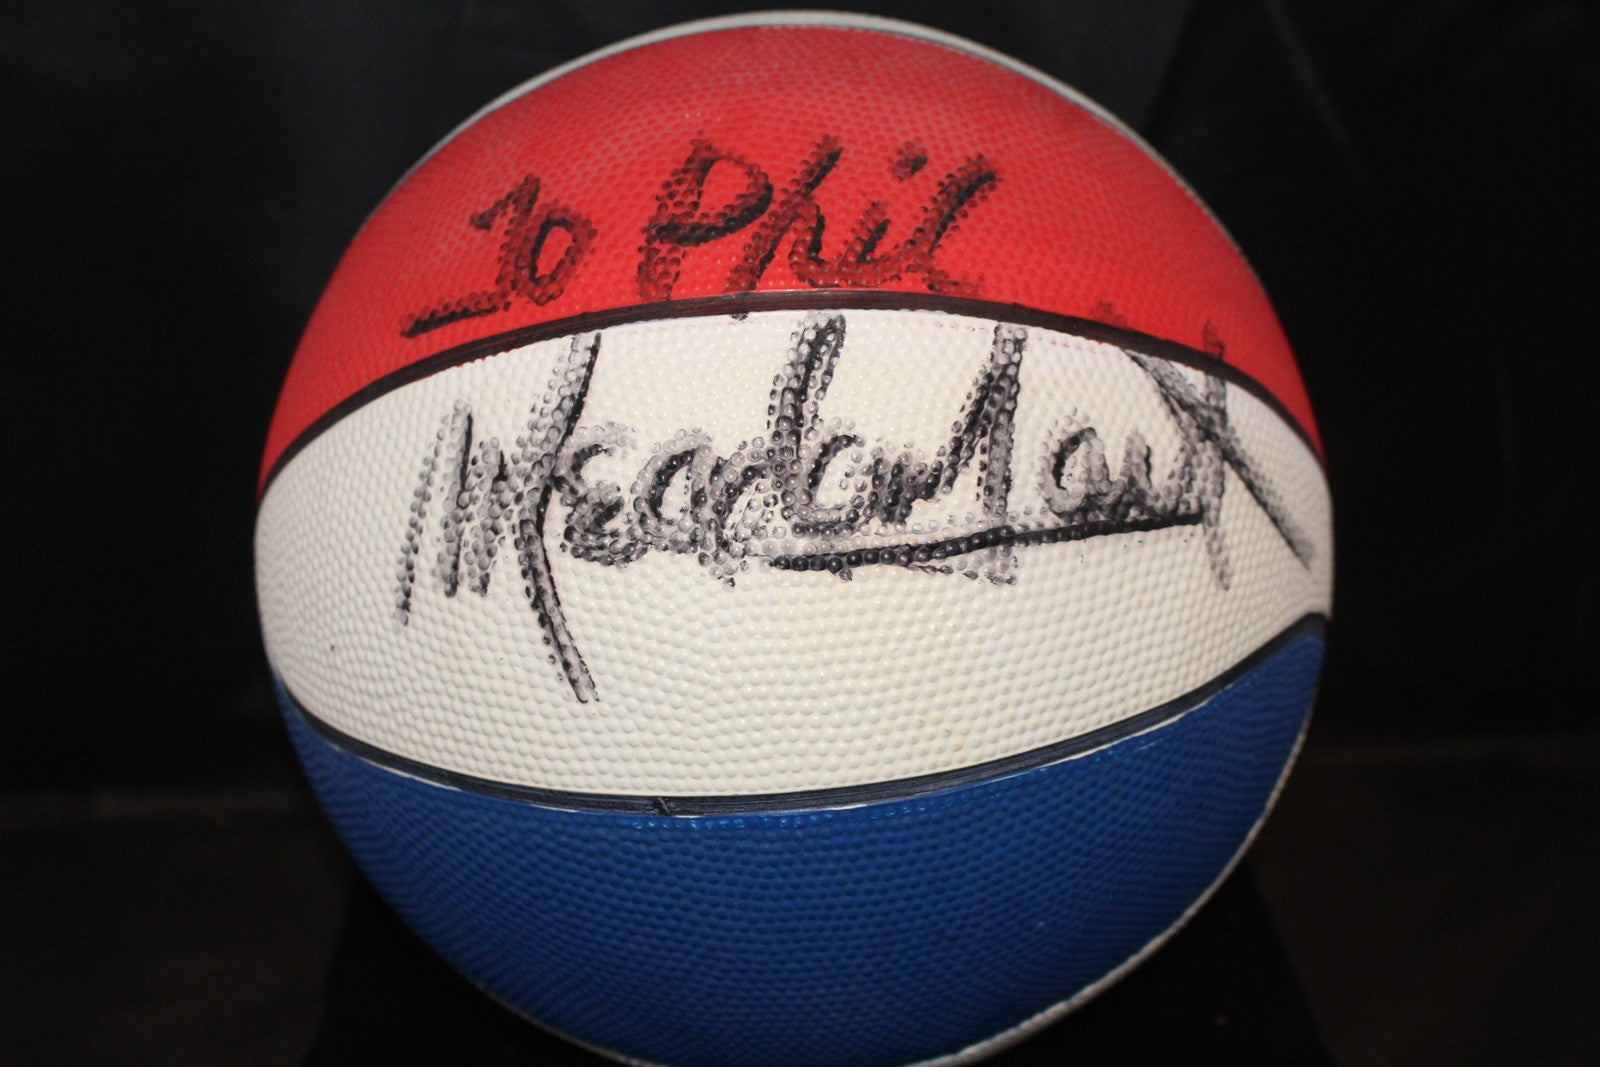 Meadowlark Lemon Autgraphed Basketball, Harlem Globetrotters - Vintage Indy Sports